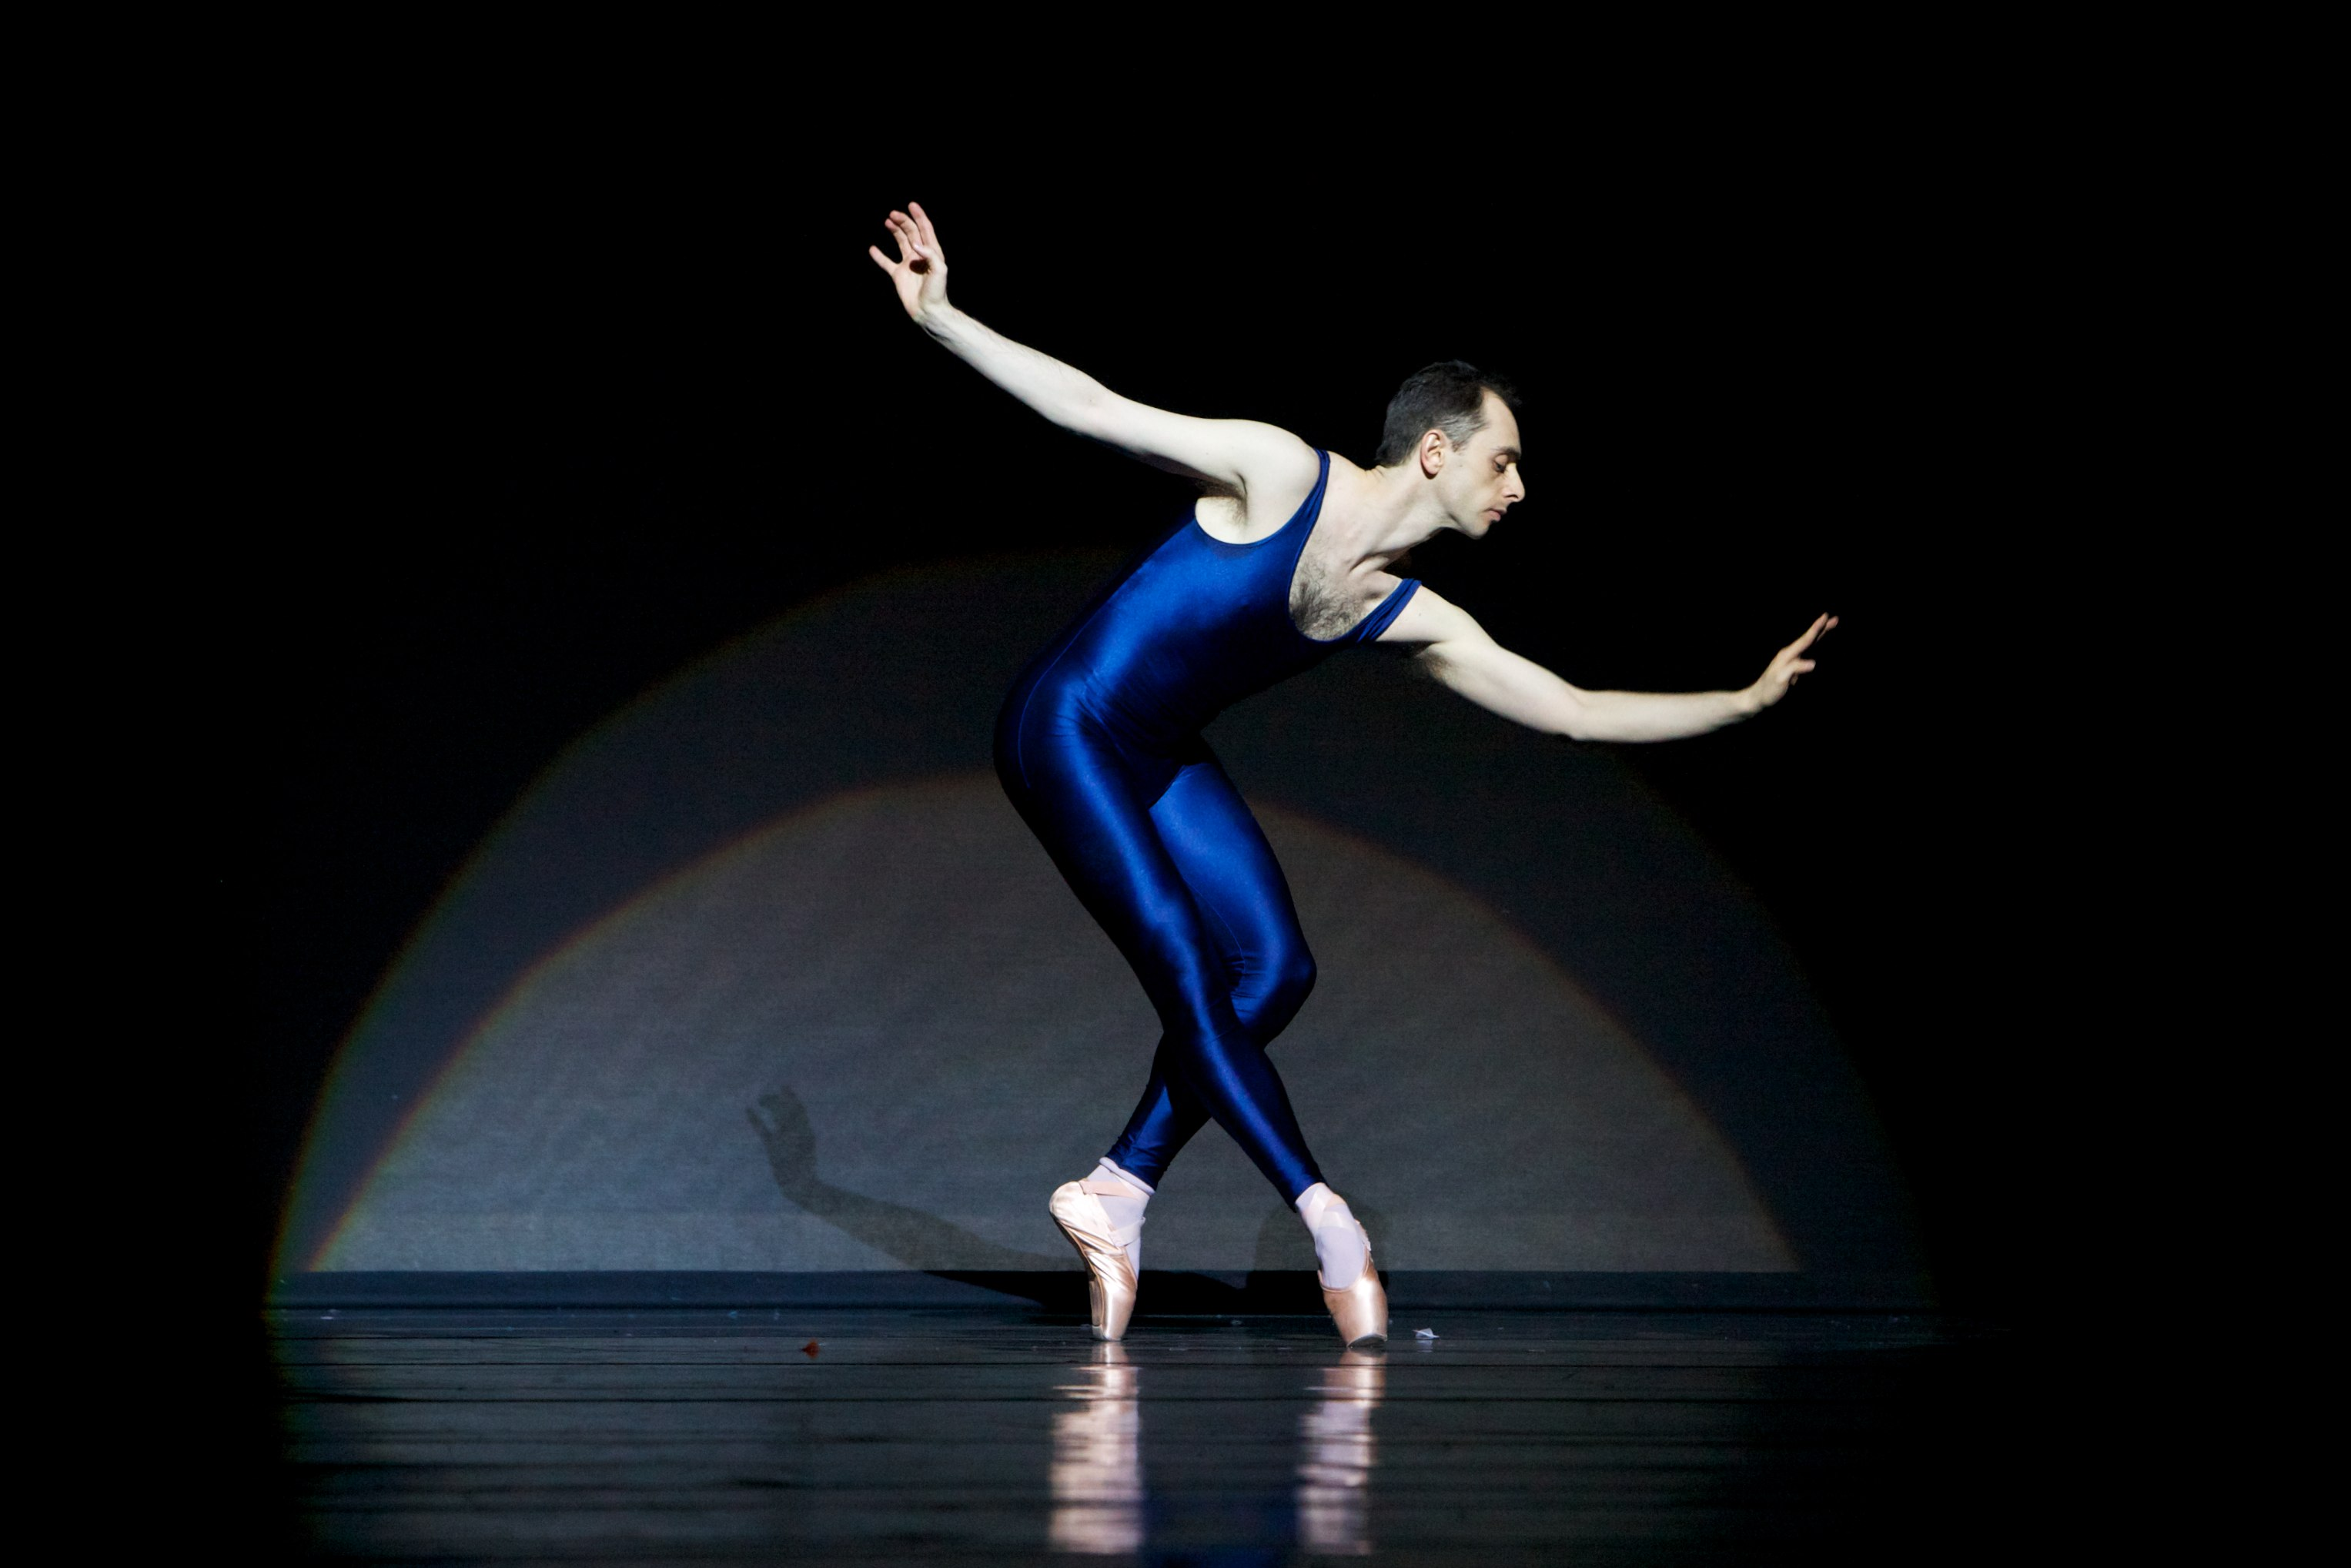 male dancer on pointe